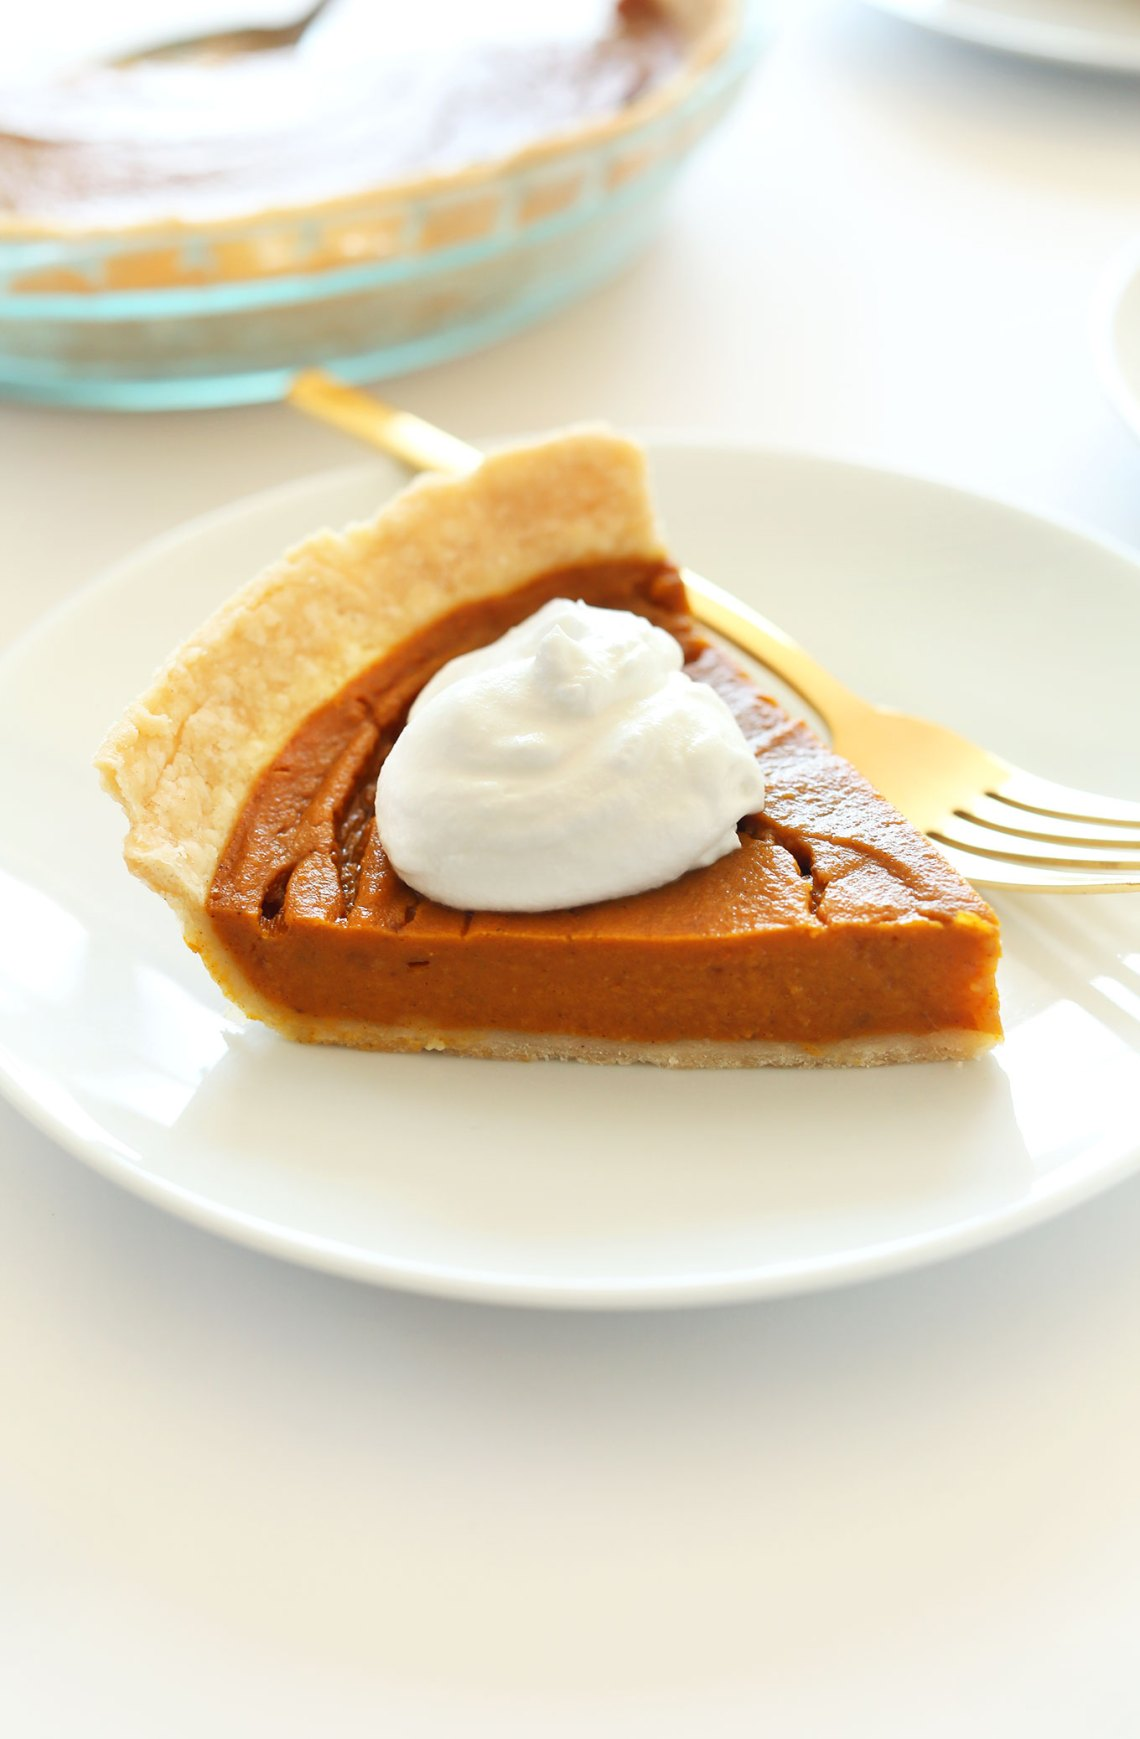 Small plate with a slice of Vegan Gluten-Free Pumpkin Pie topped with coconut whipped cream